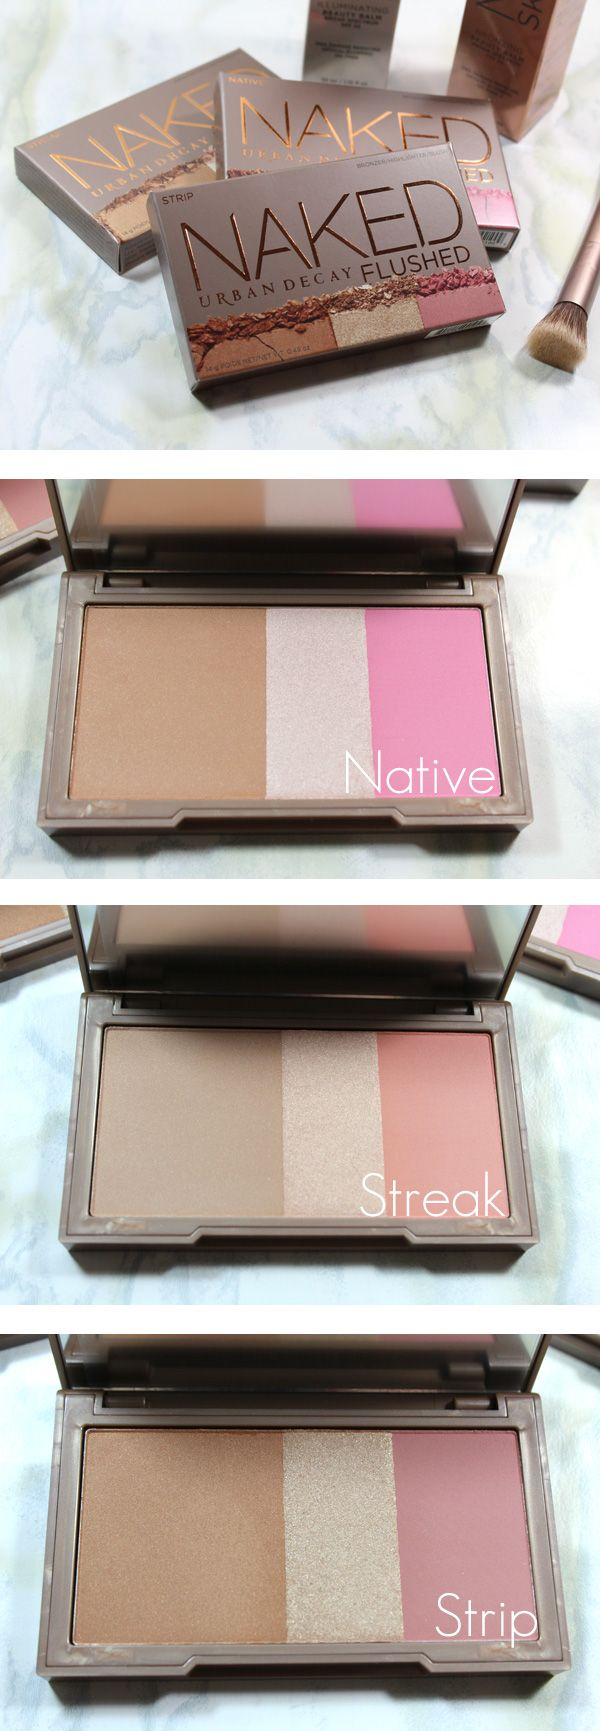 Urban Decay Naked Flush Cheek Palettes via beautifulmakeupsearch.com I think my colour would be streak.